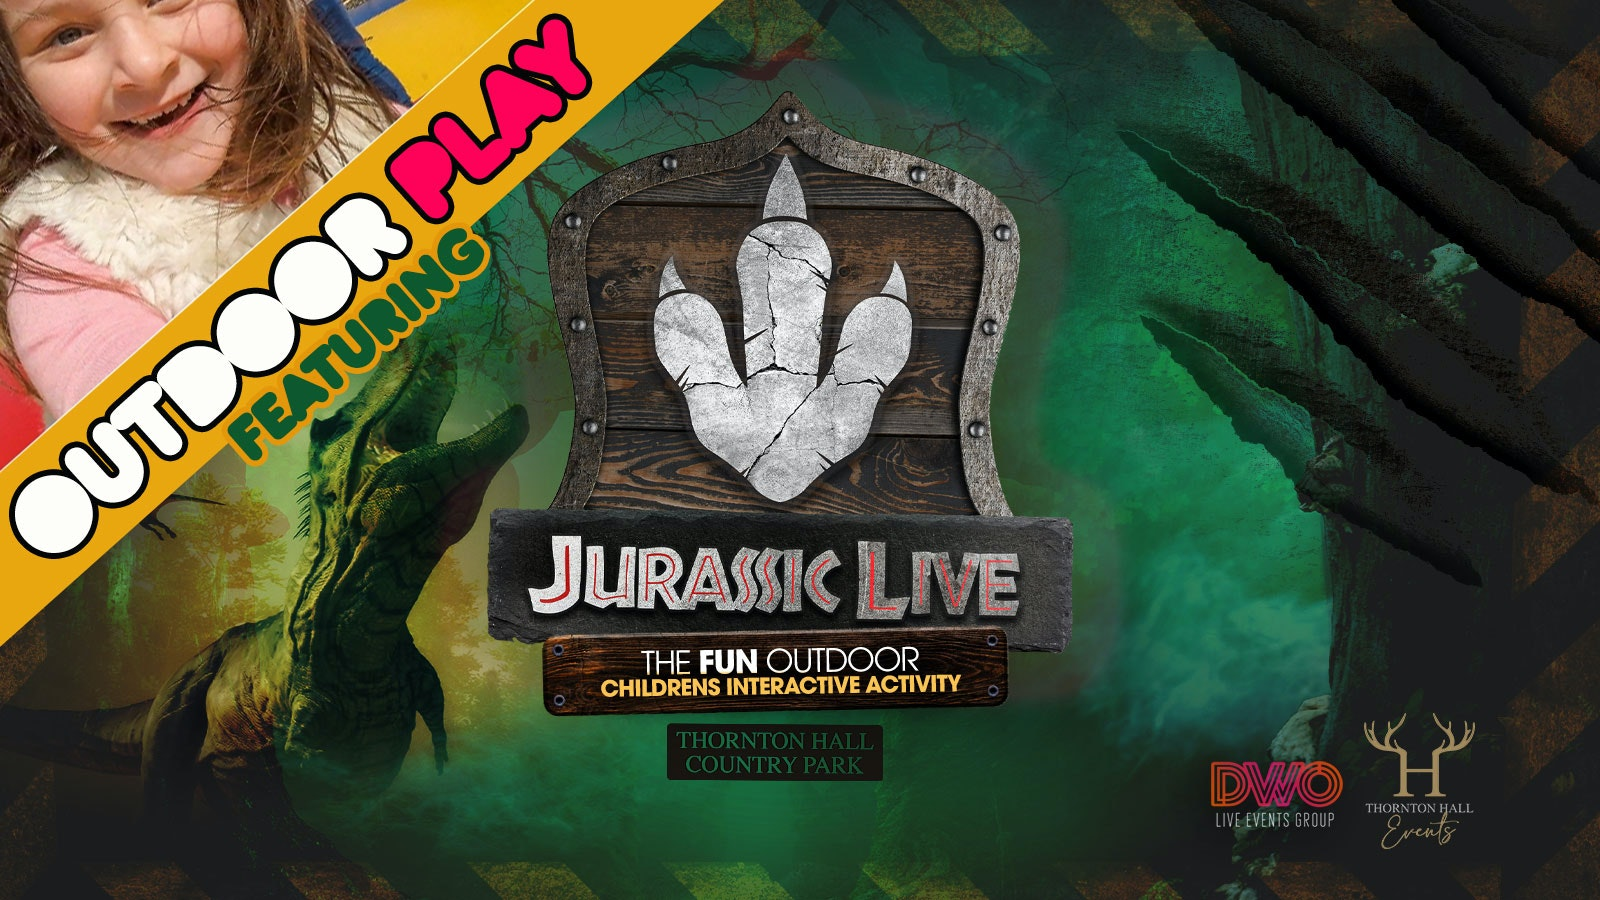 Jurassic Live inc Outdoor Play (Am) – Sunday 25th April – 12noon